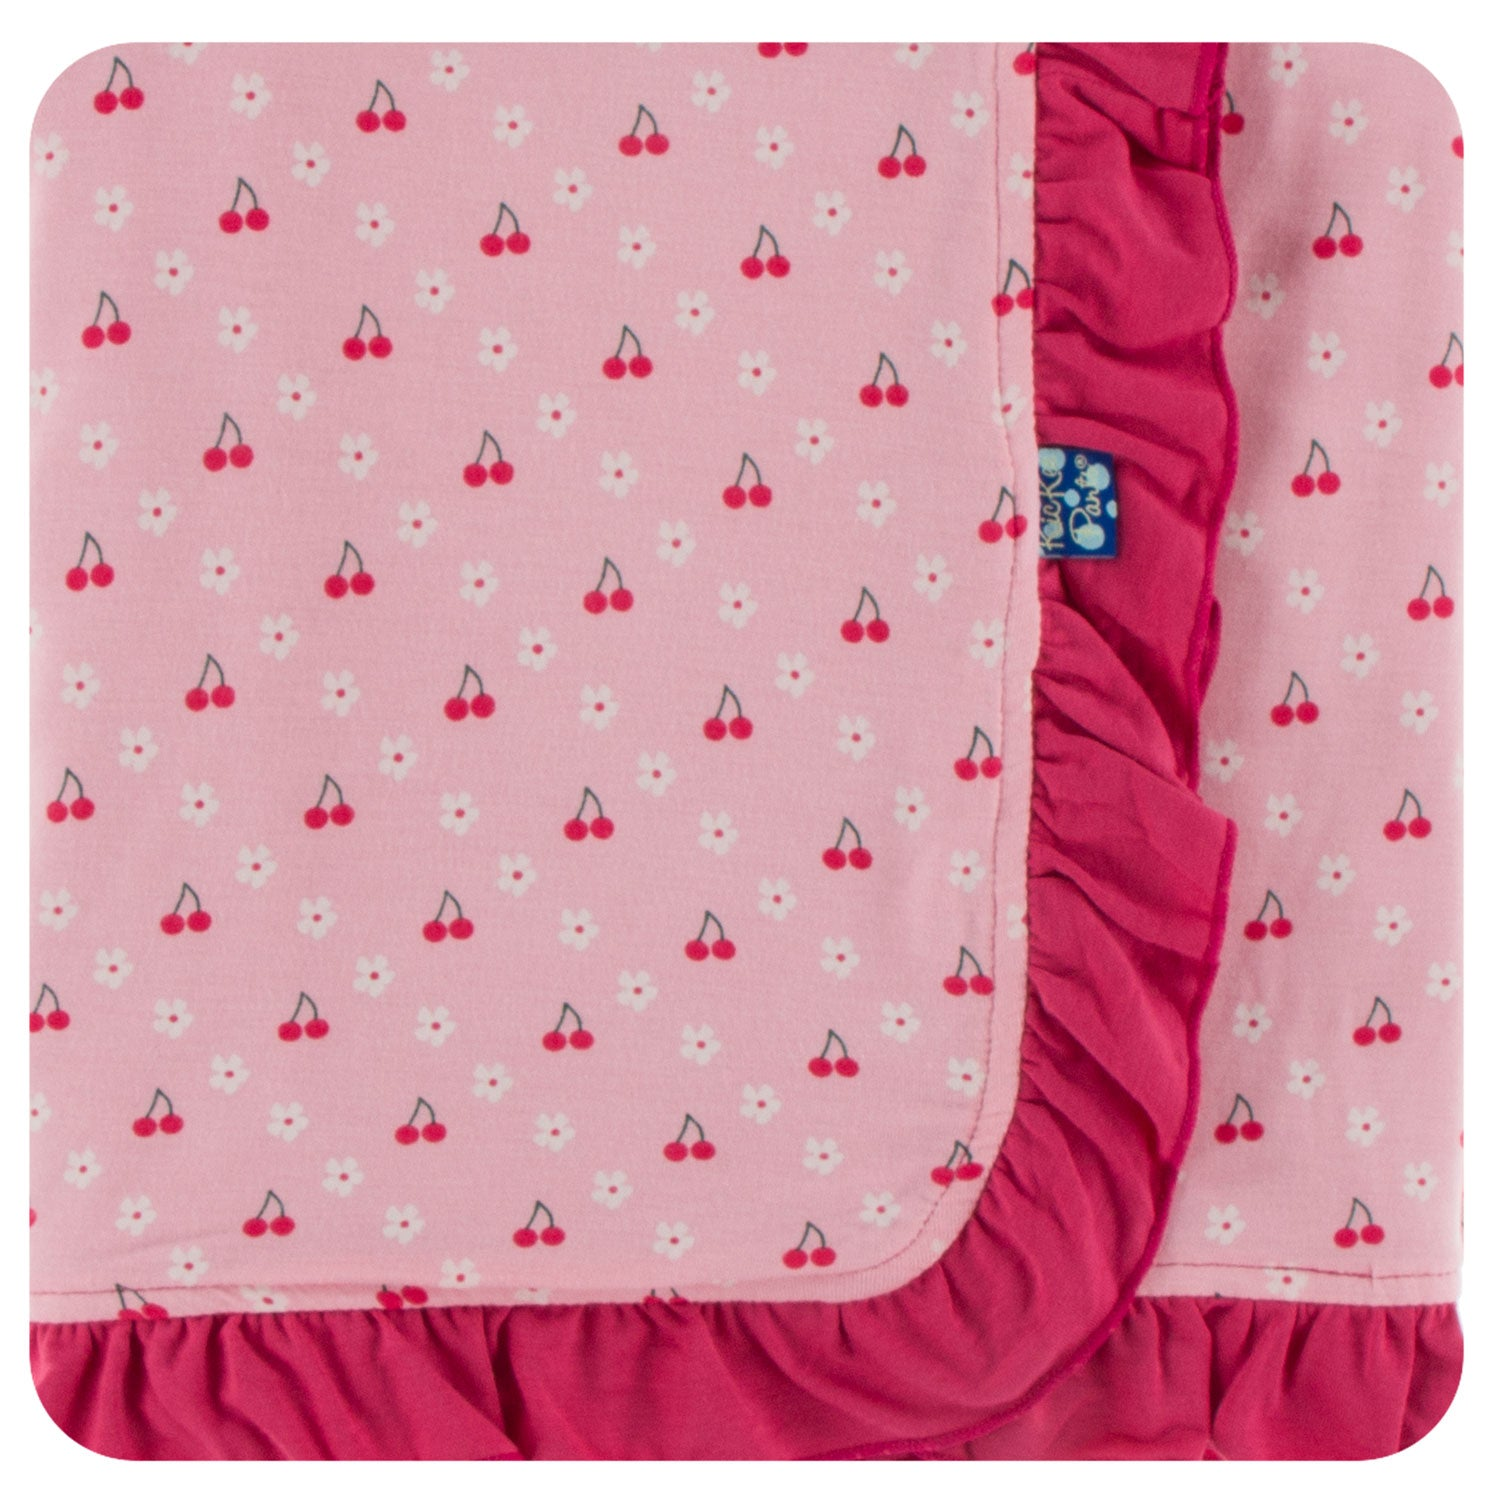 KicKee Pants Ruffle Stroller Blanket - Lotus Cherries and Blossoms